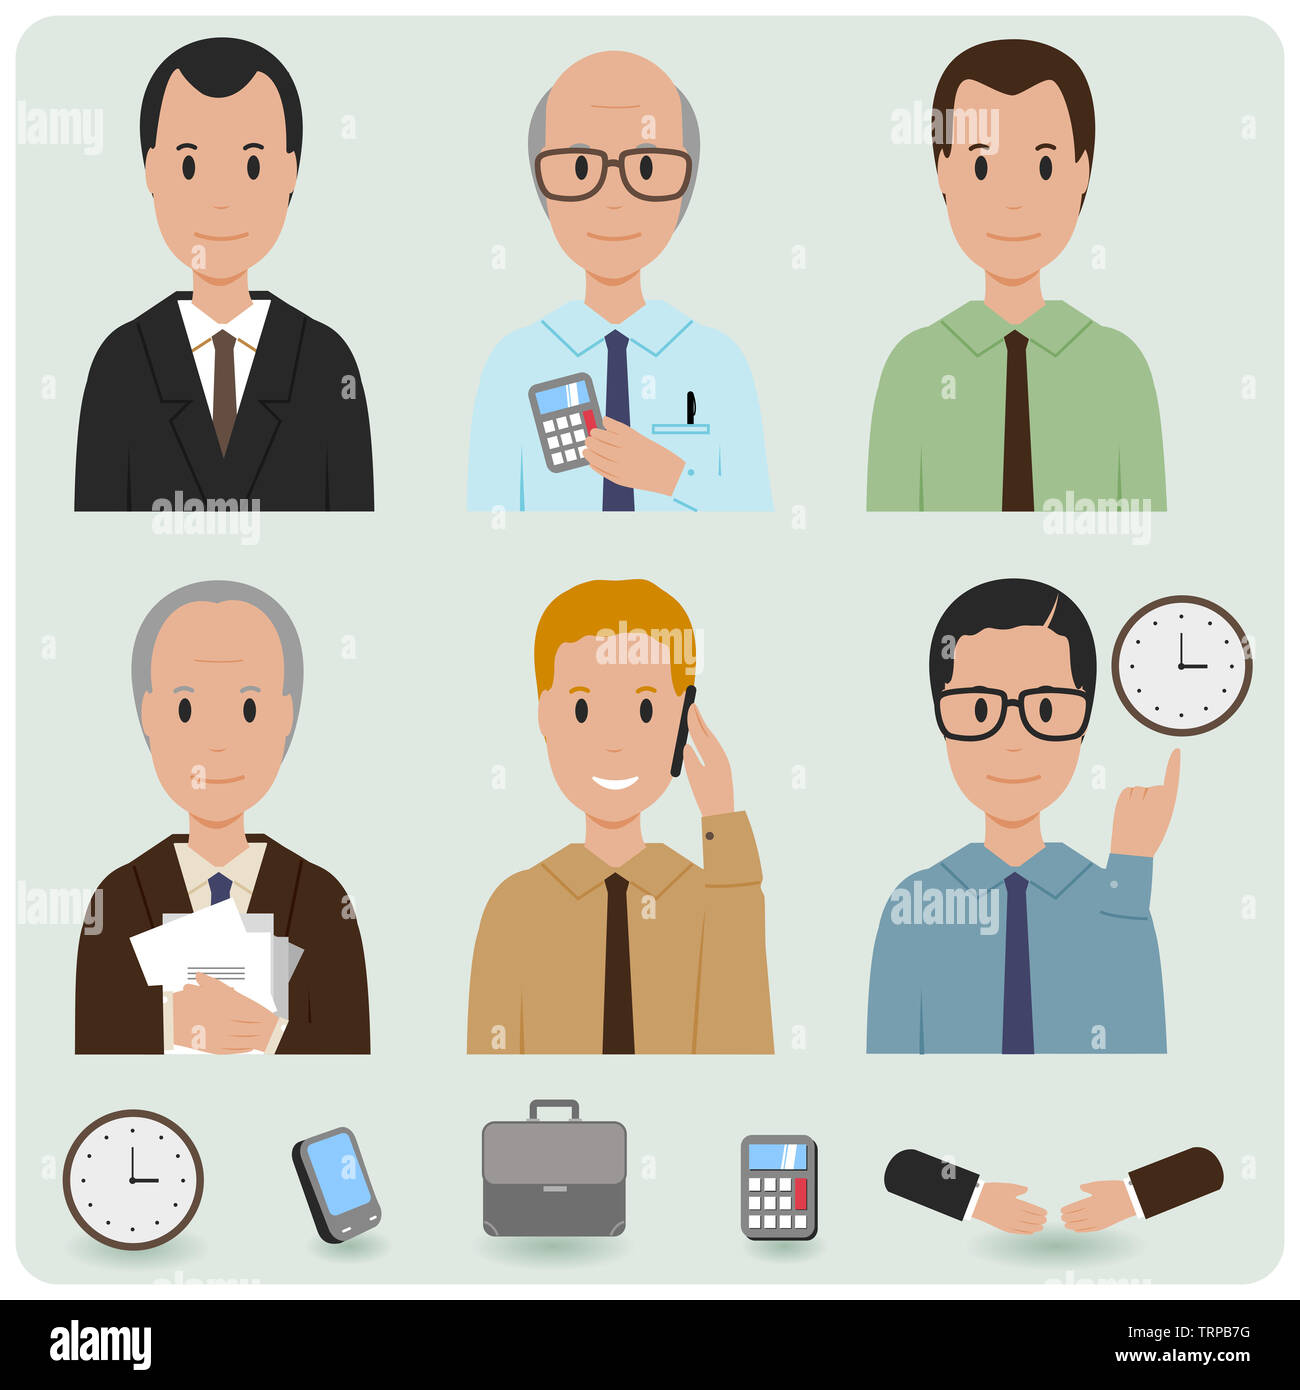 Illustration set of business people characters. - Stock Image